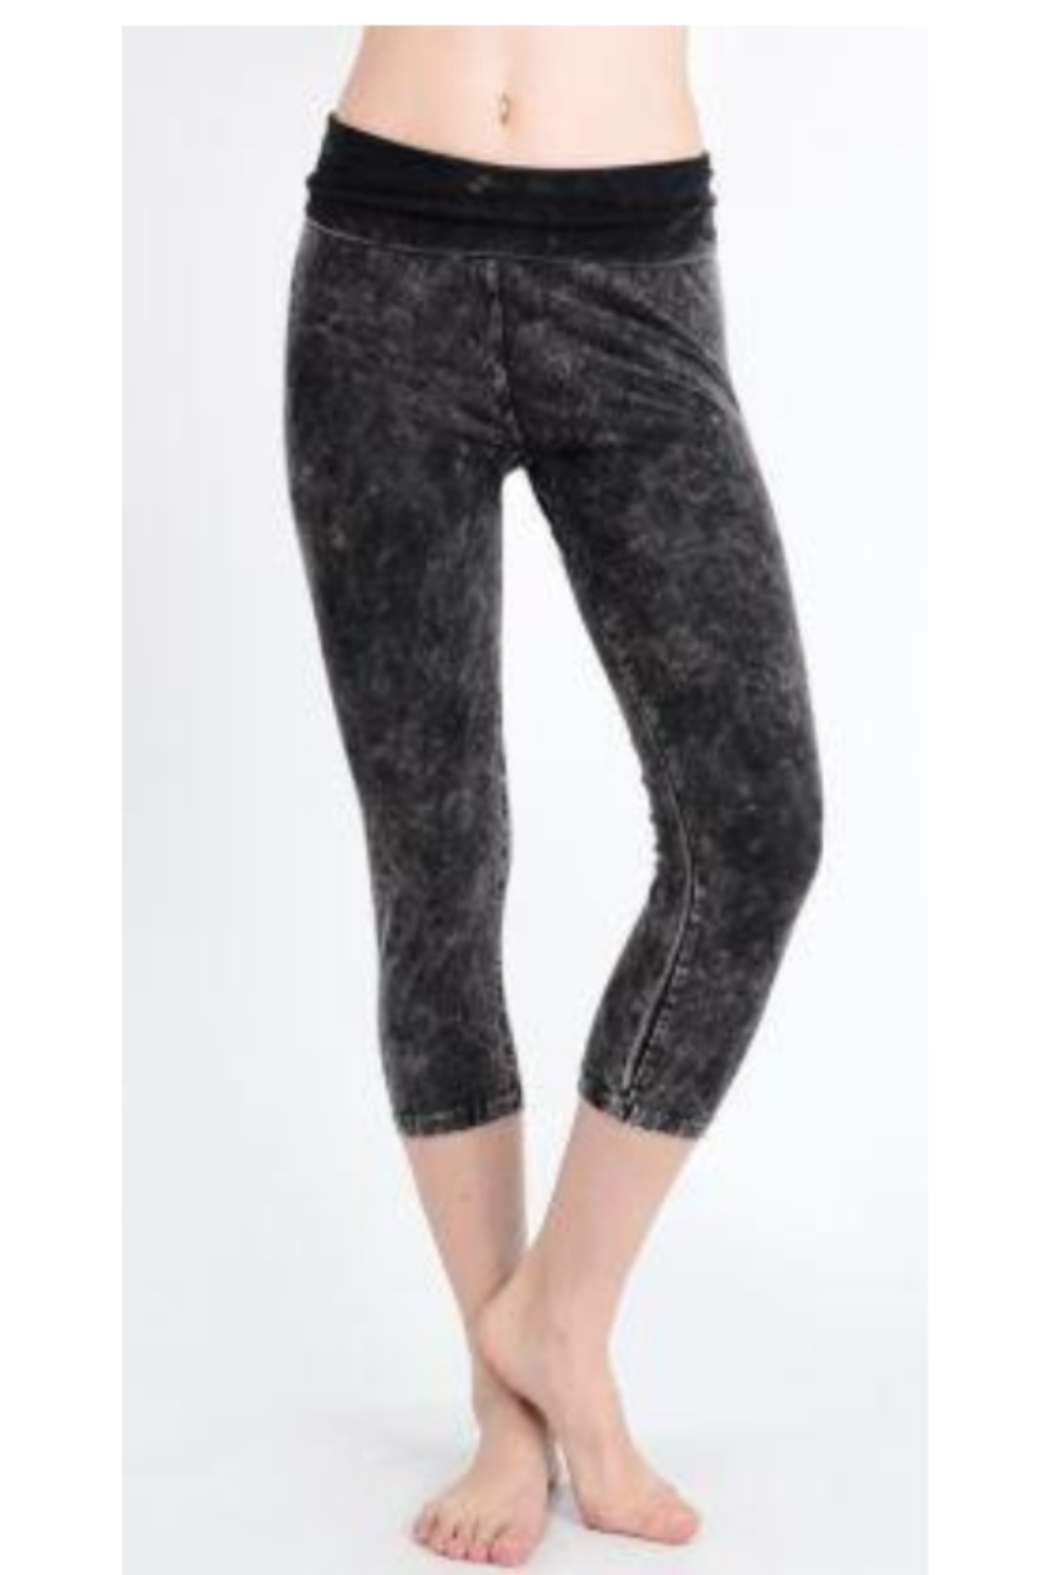 T Party Mineral Washed Capri Length Cropped Yoga Leggings - Front Cropped Image